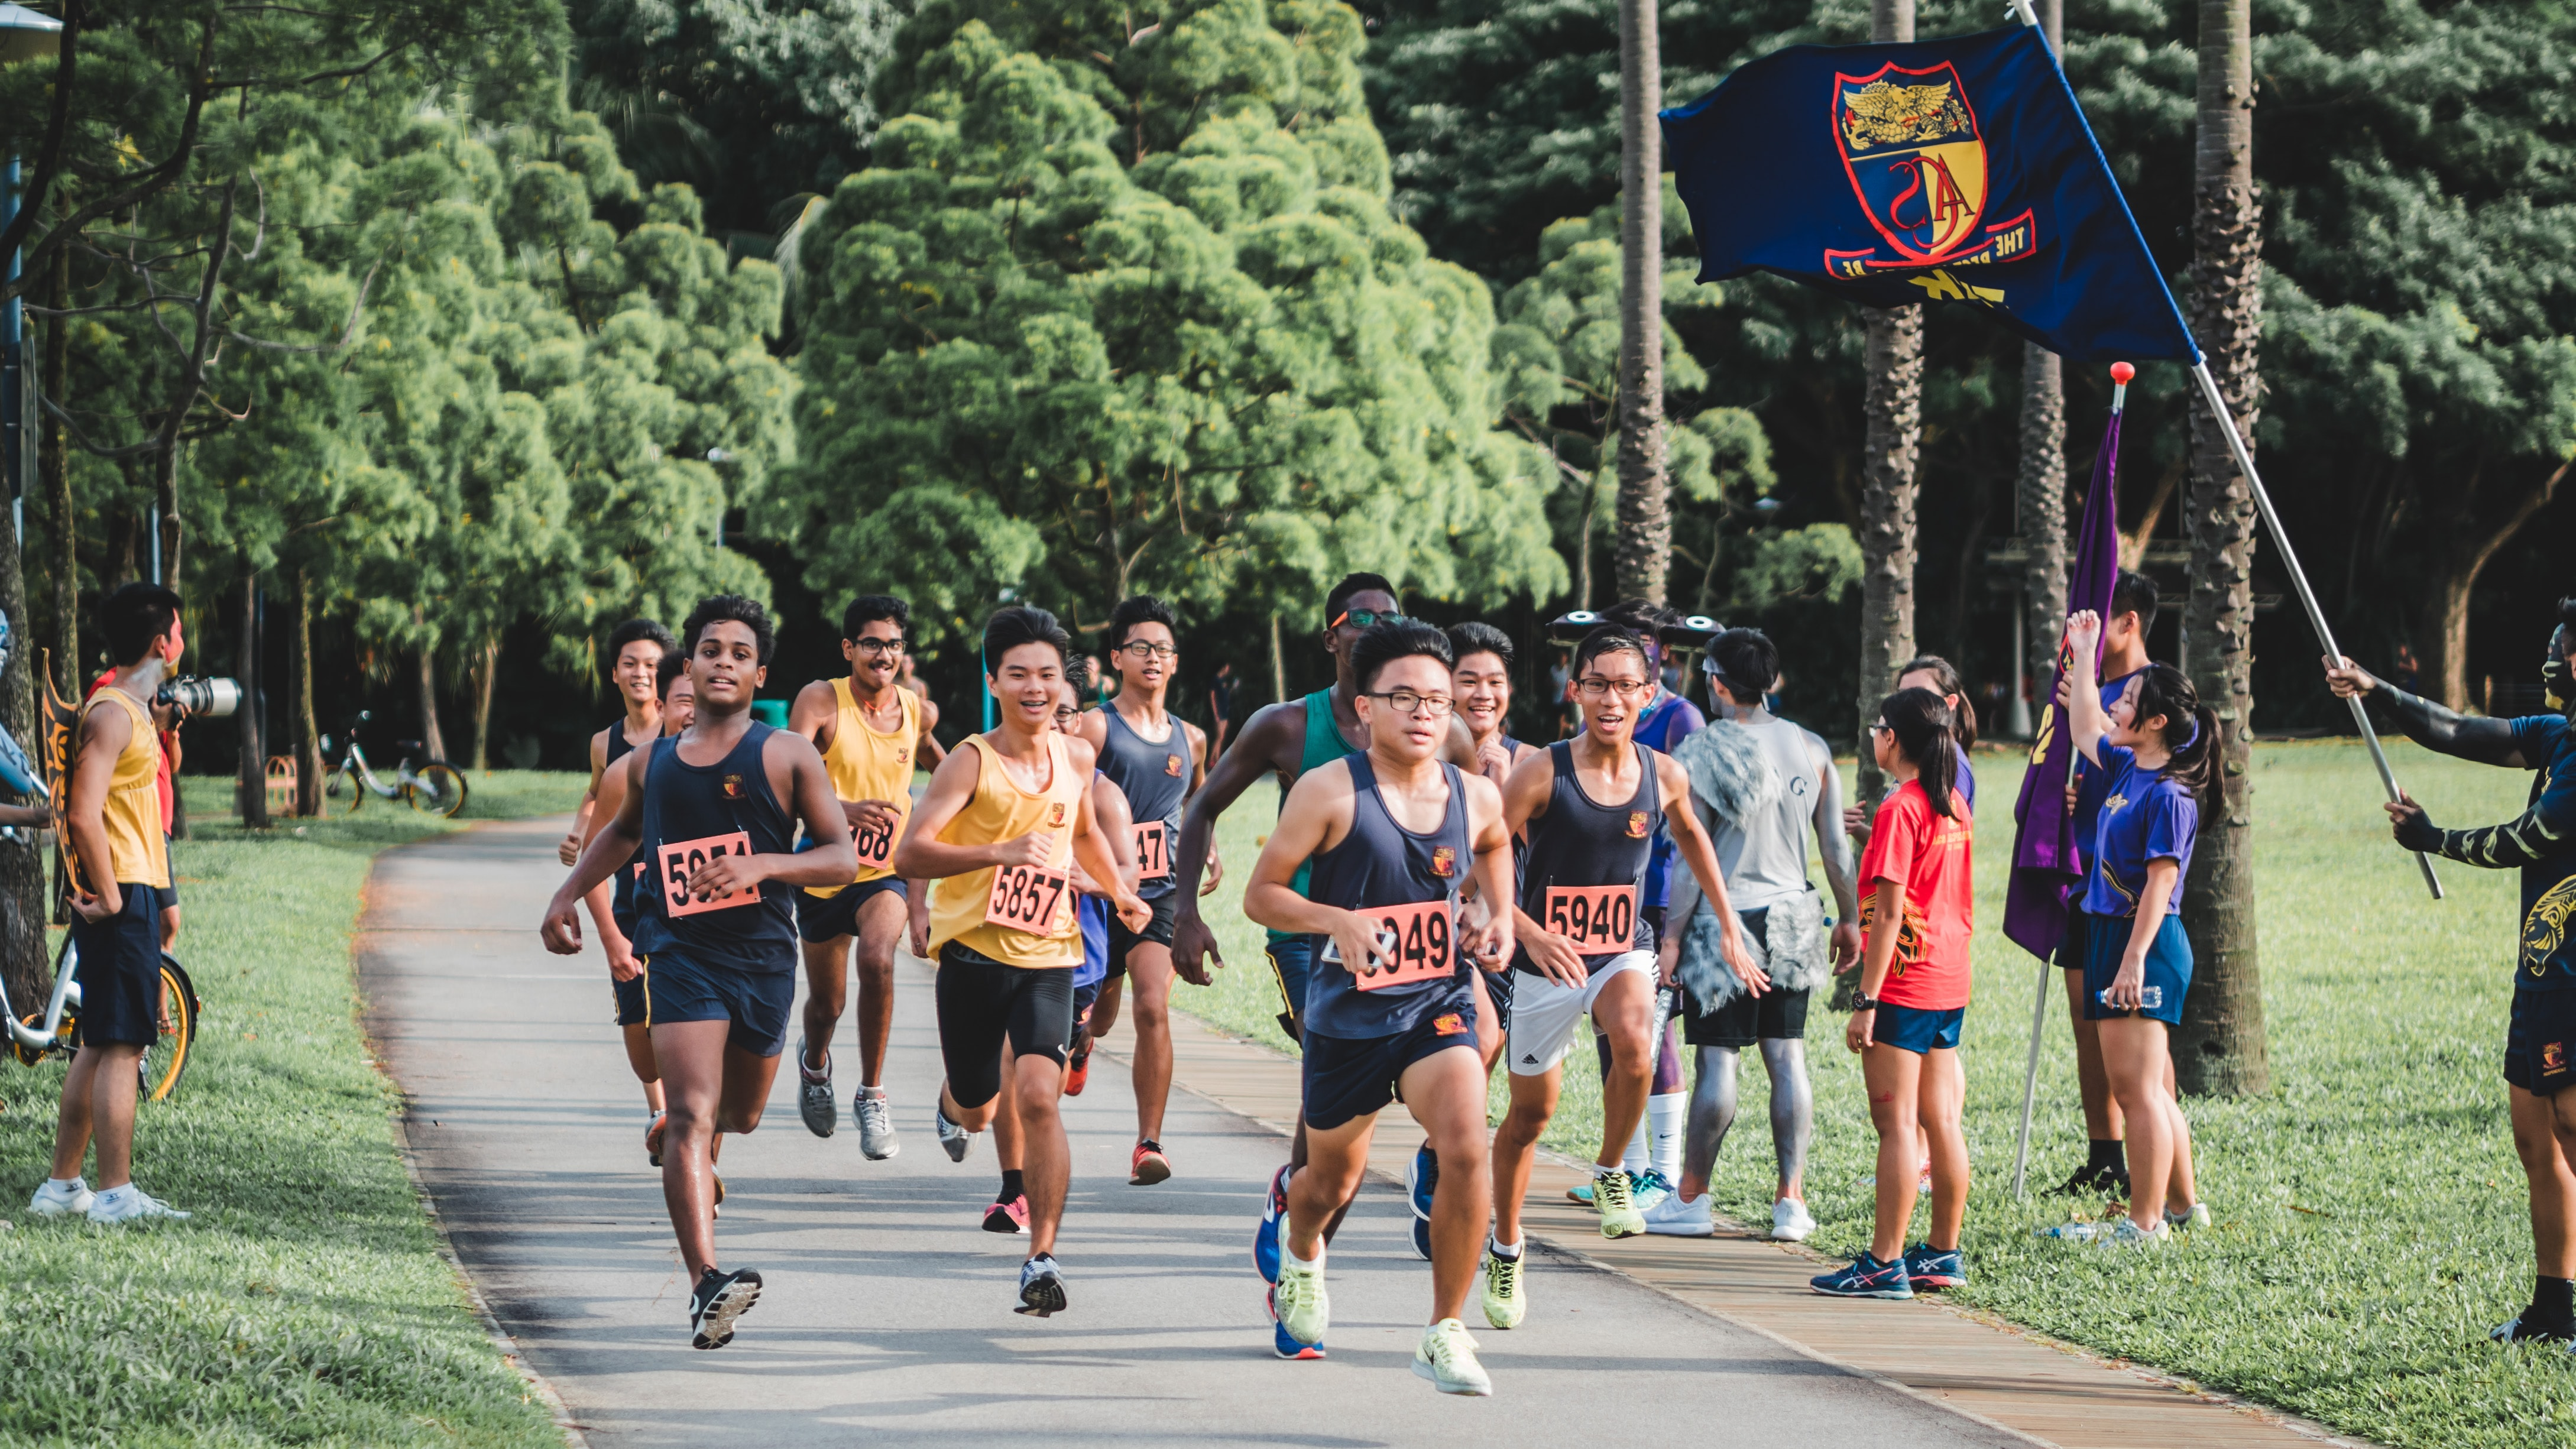 A group in Singapore running a cross country race